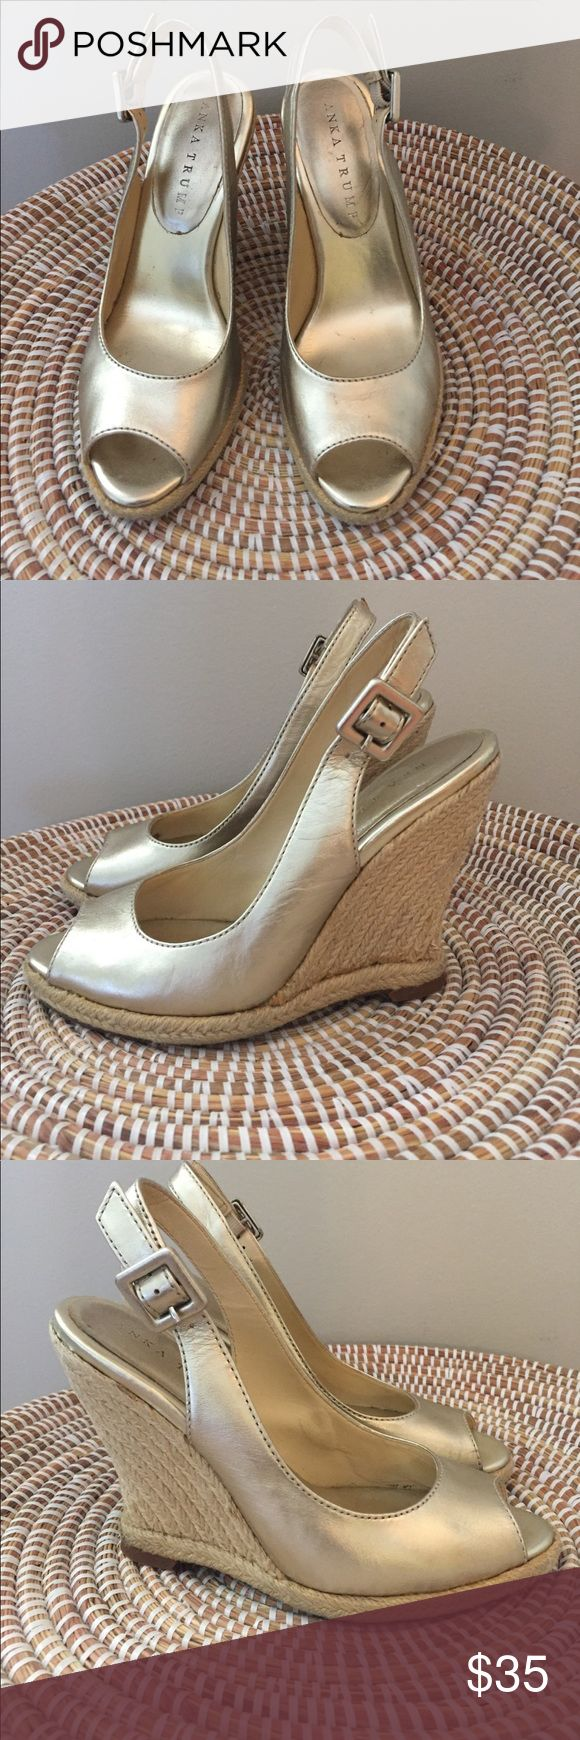 Ivanka Trump gold espadrilles wedges sandals Worn multiple times. Still have a lot of life left!! Scuff on the inside of one shoes, see photo. Gold color goes with everything! Great for spring/summer. 🌸 Ivanka Trump Shoes Wedges